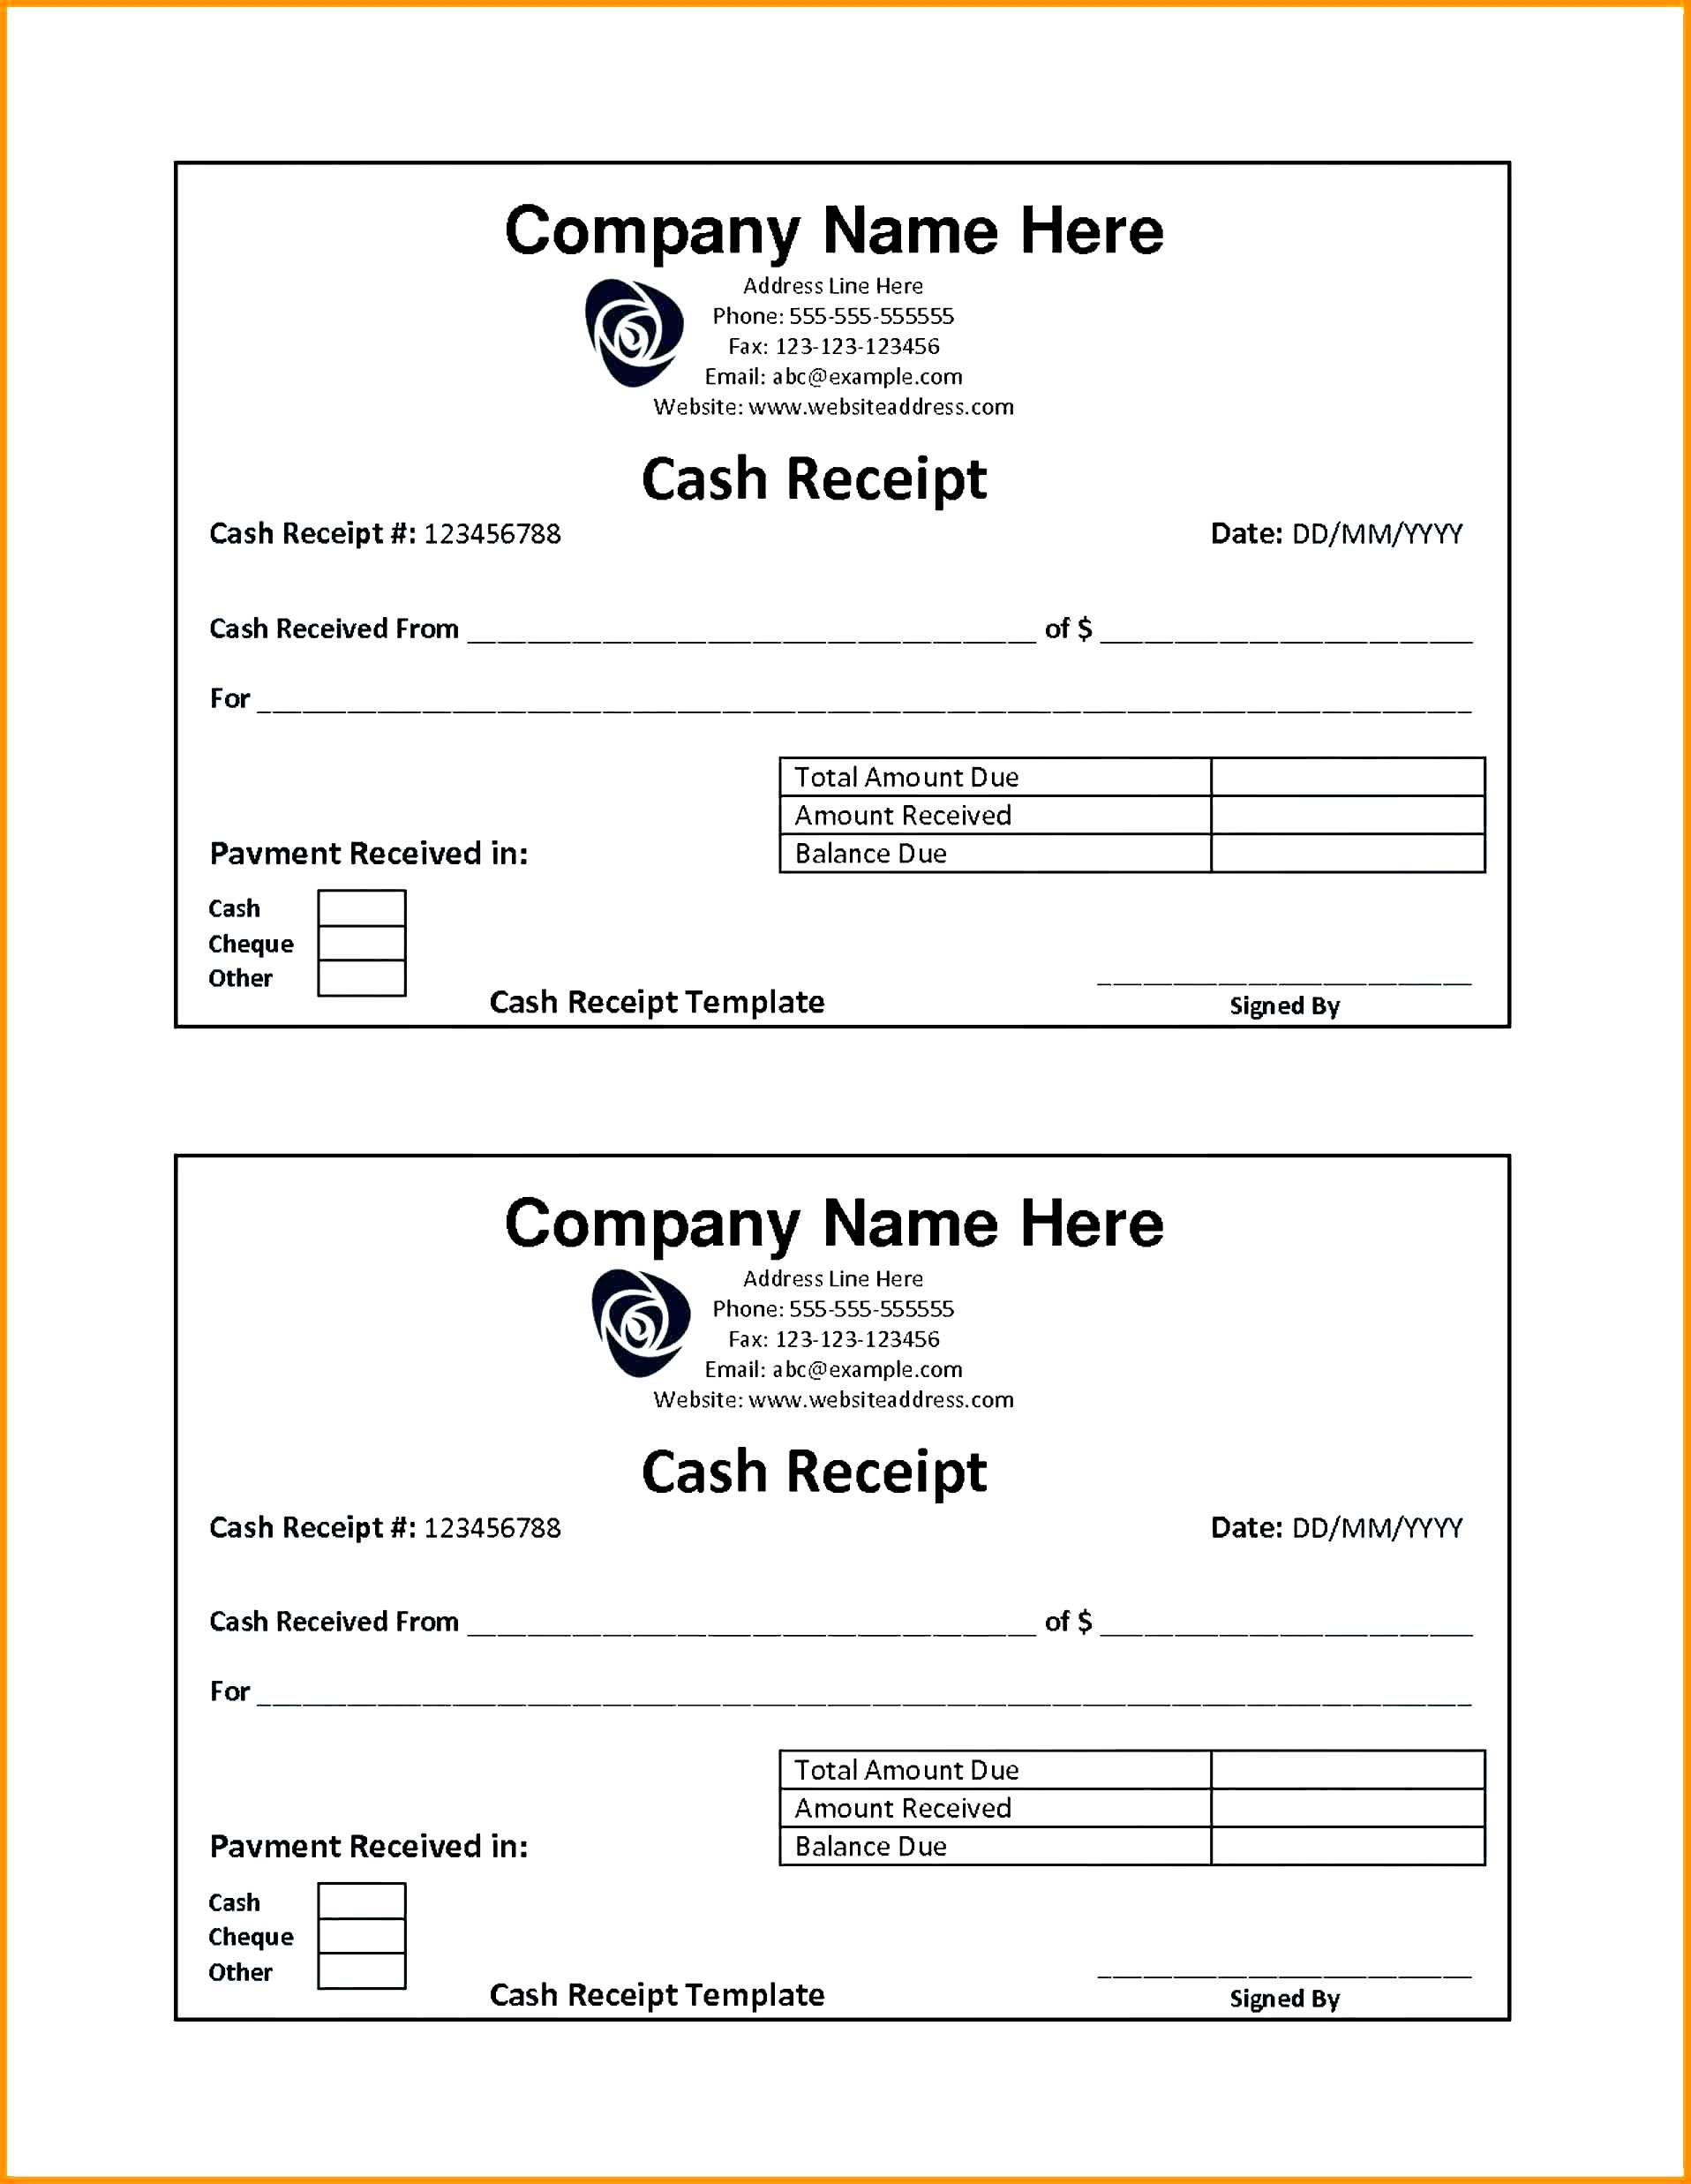 cash receipt template word doc free india simple resume